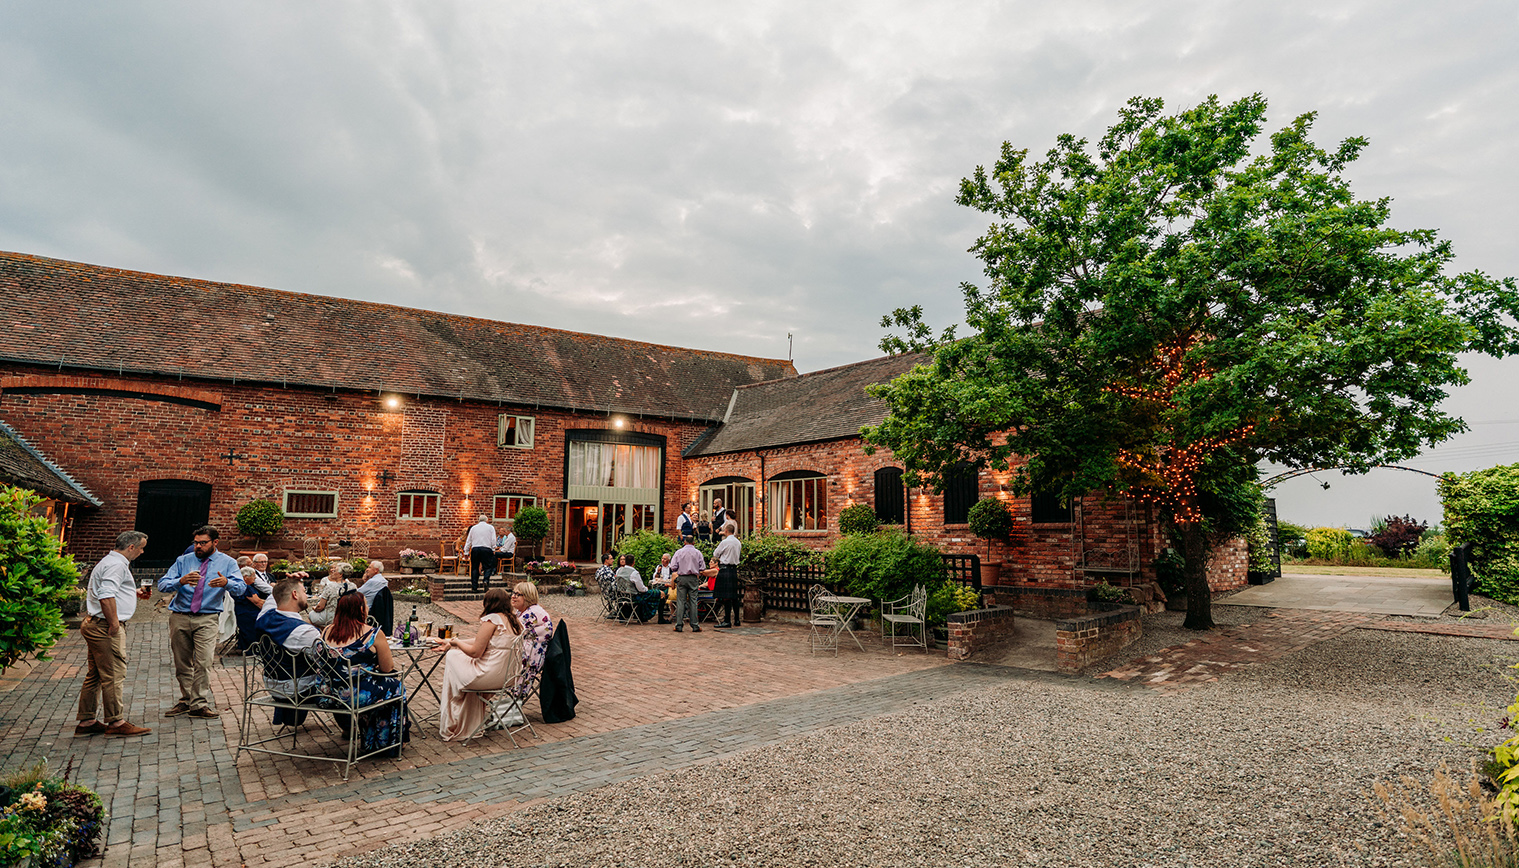 Curradine barns is the perfect location is Worcestershire for a romantic wedding reception